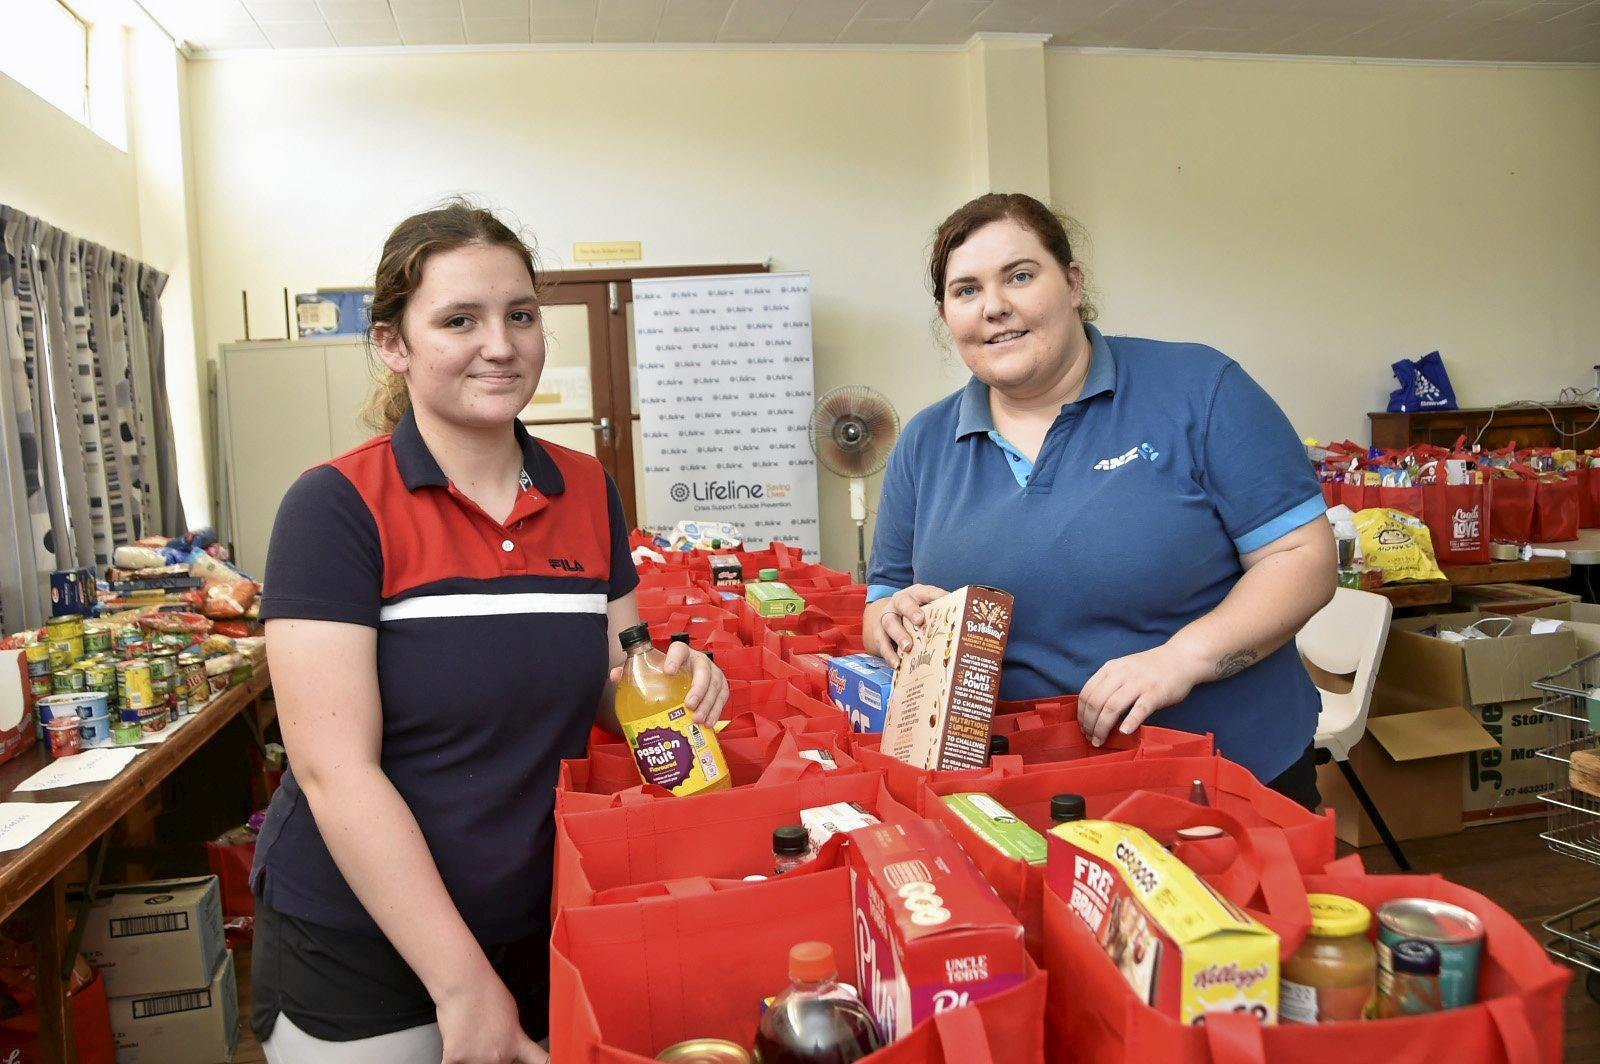 Lifeline volunteers, Darci Towning (left) and Sam Ost packing Loads of Love bags with groceries. Loads of Love appeal final day. Lifeline Christmas appeal. December 2018